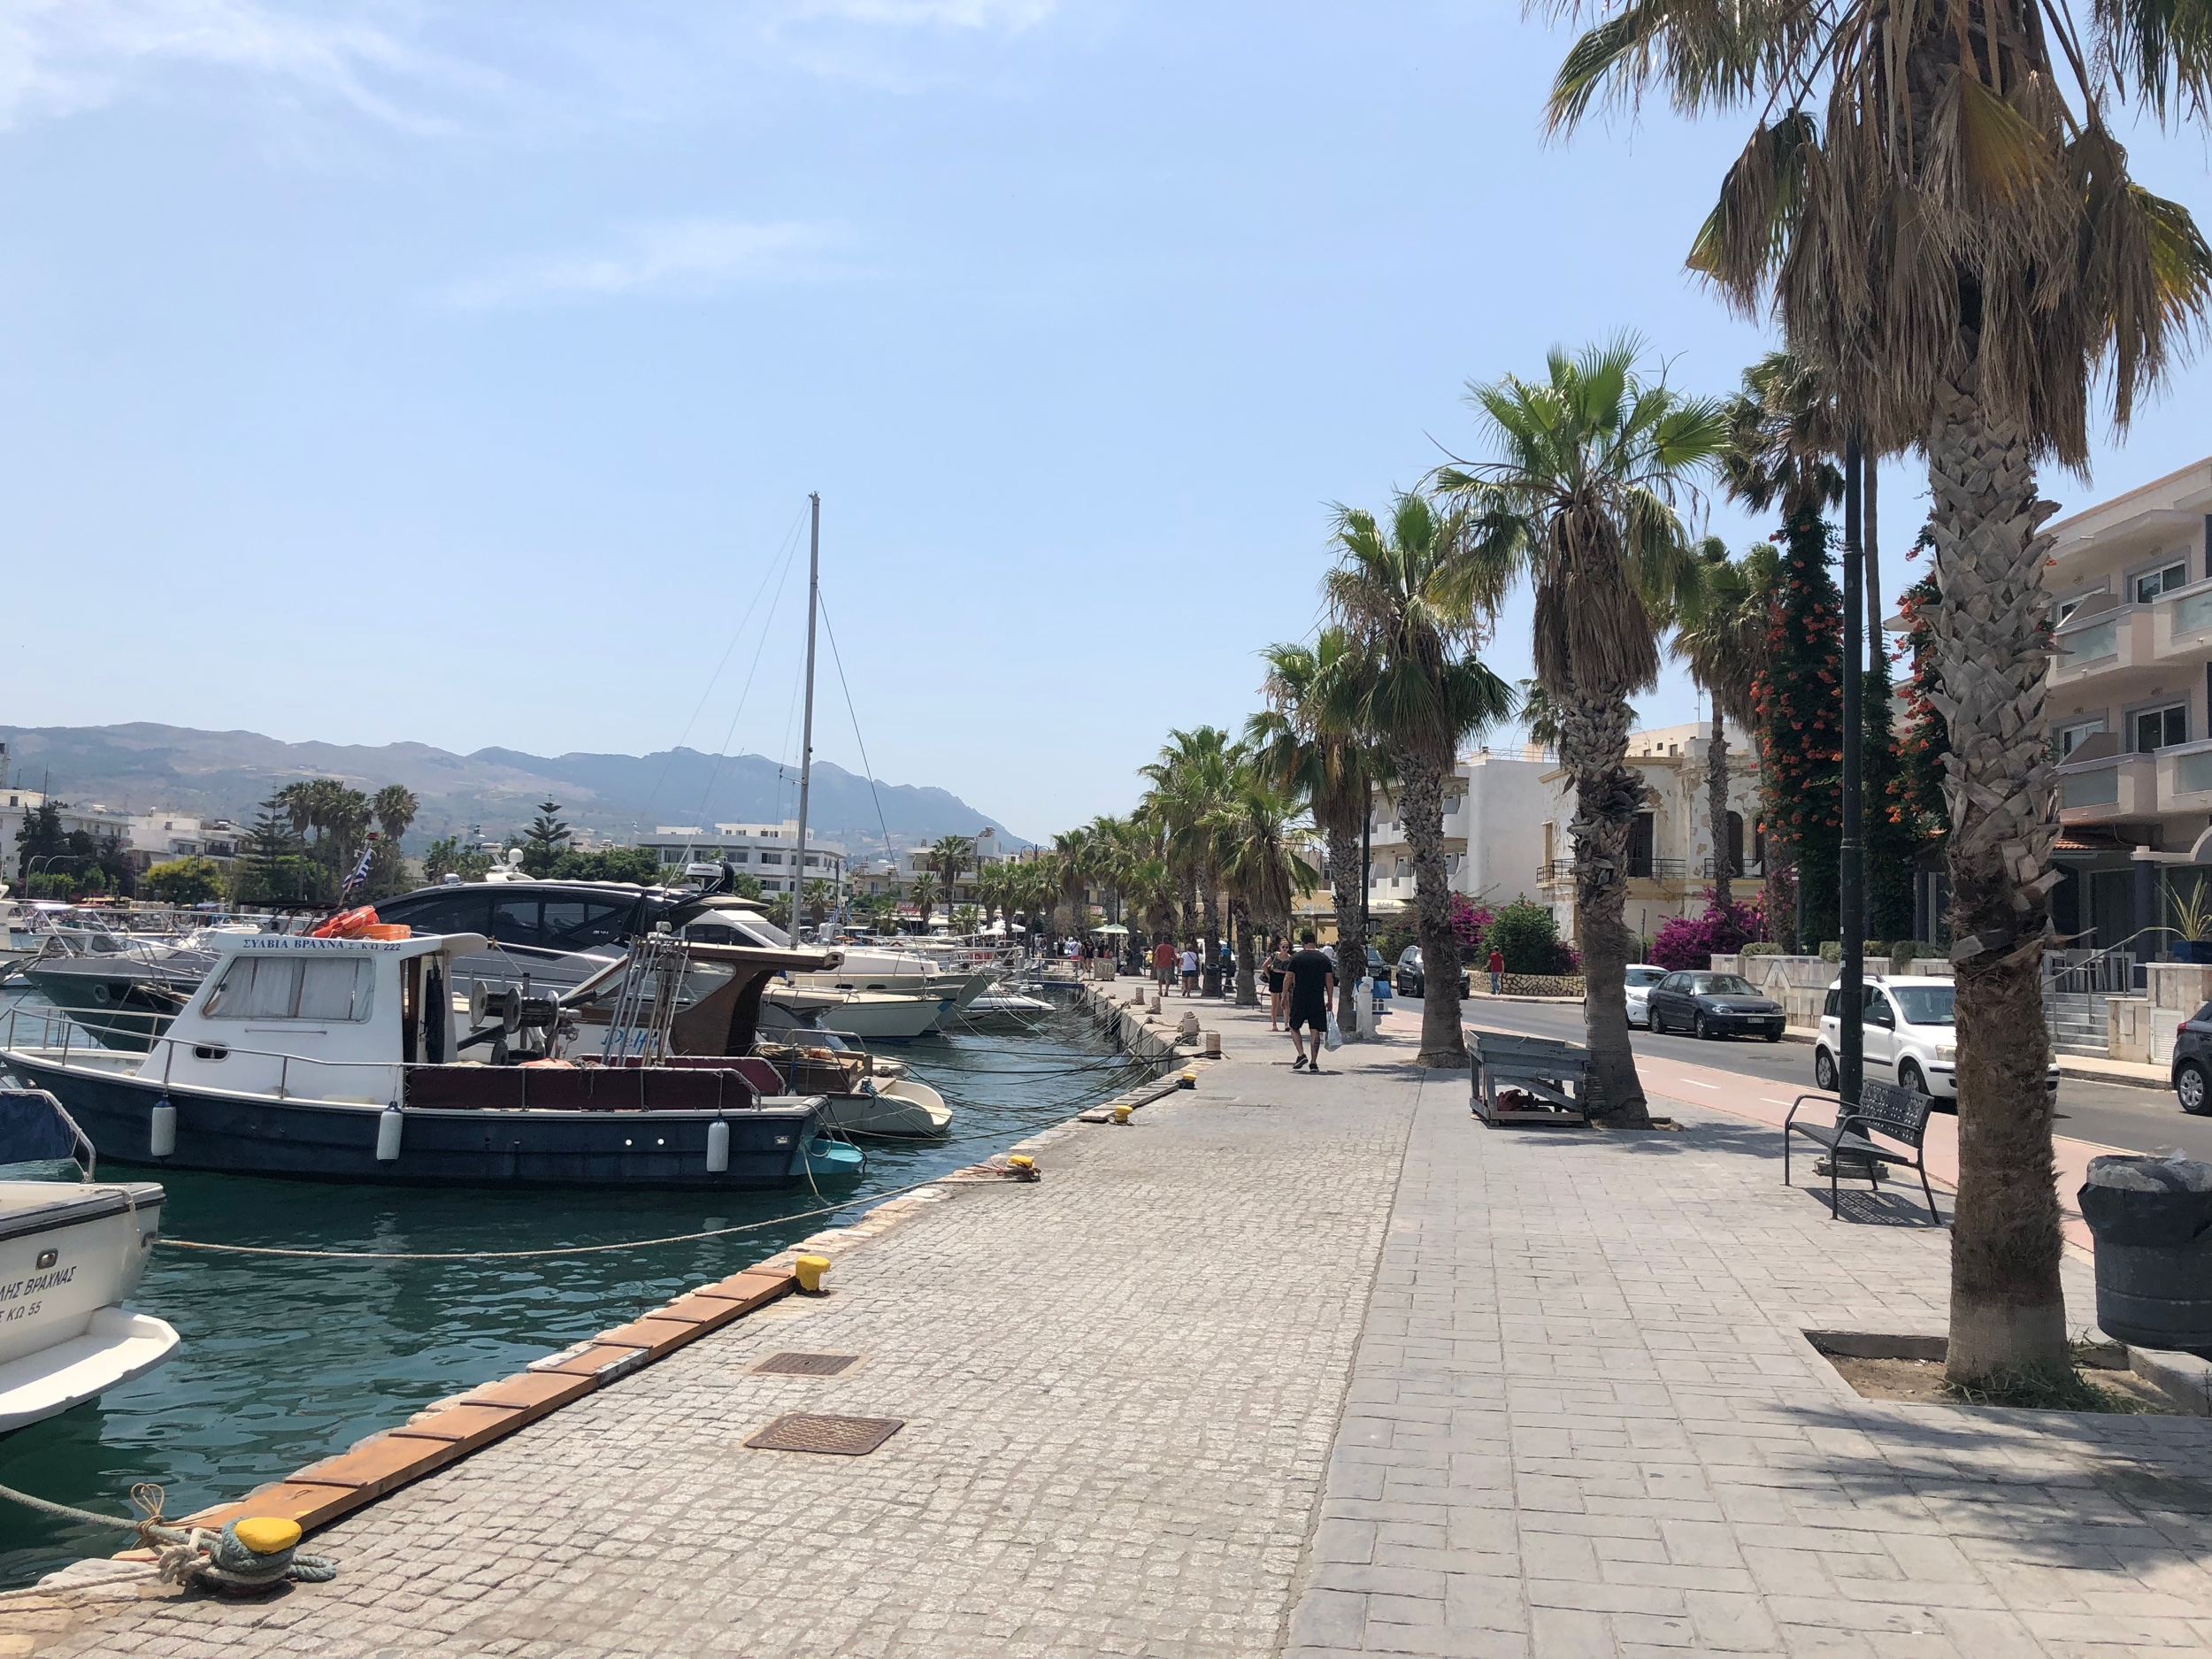 Walking past the port